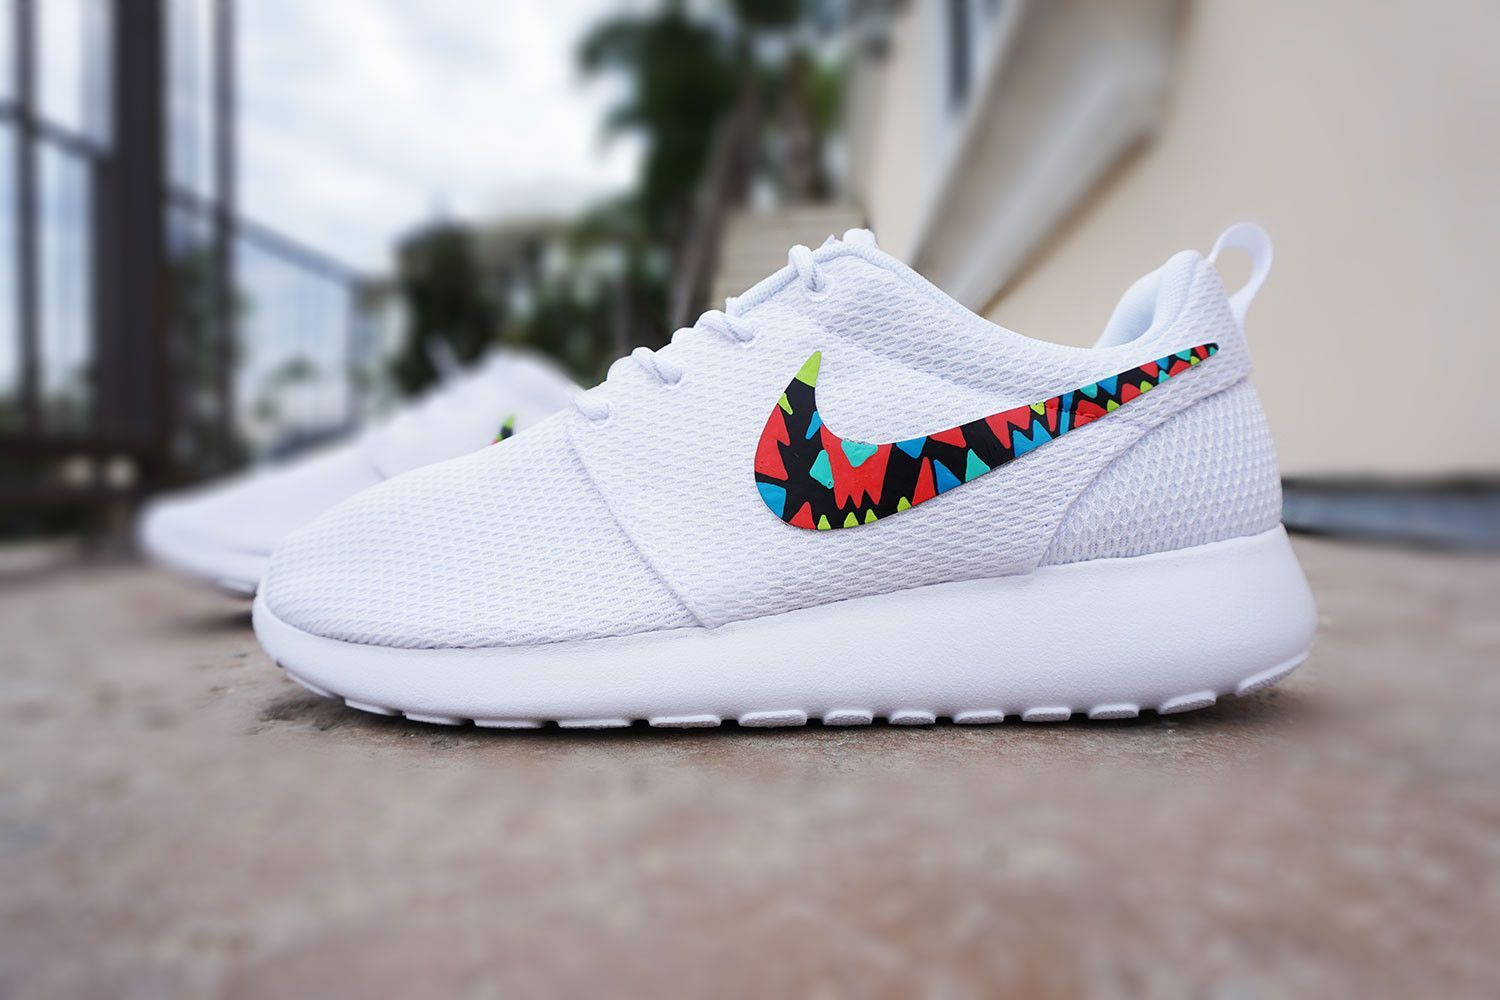 hot sale online 1bffe 805f0 Womens custom Nike Roshe run, Tribal design, White with color, cute design, womens  custom sneakers, red, blue, teal, lime, kiwi, yellow